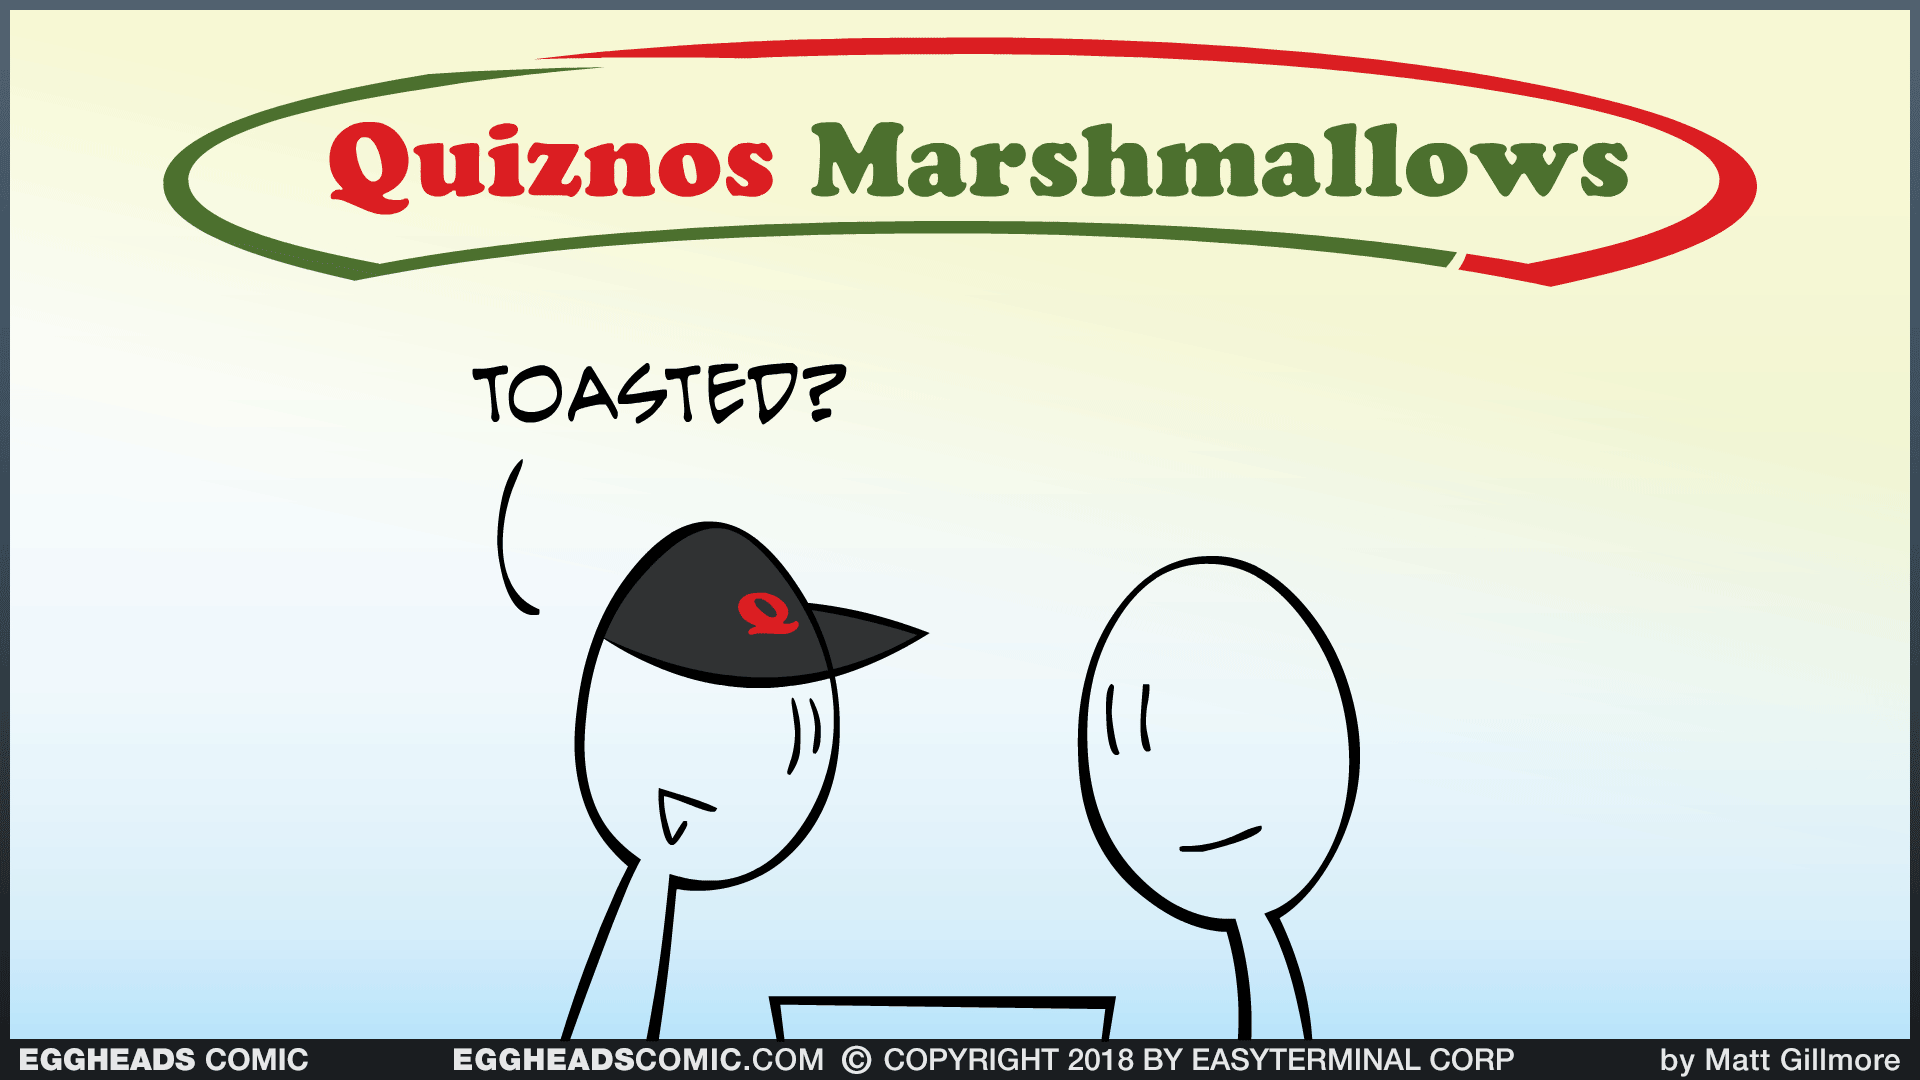 Webcomic Eggheads Comic Strip 118 Quiznos